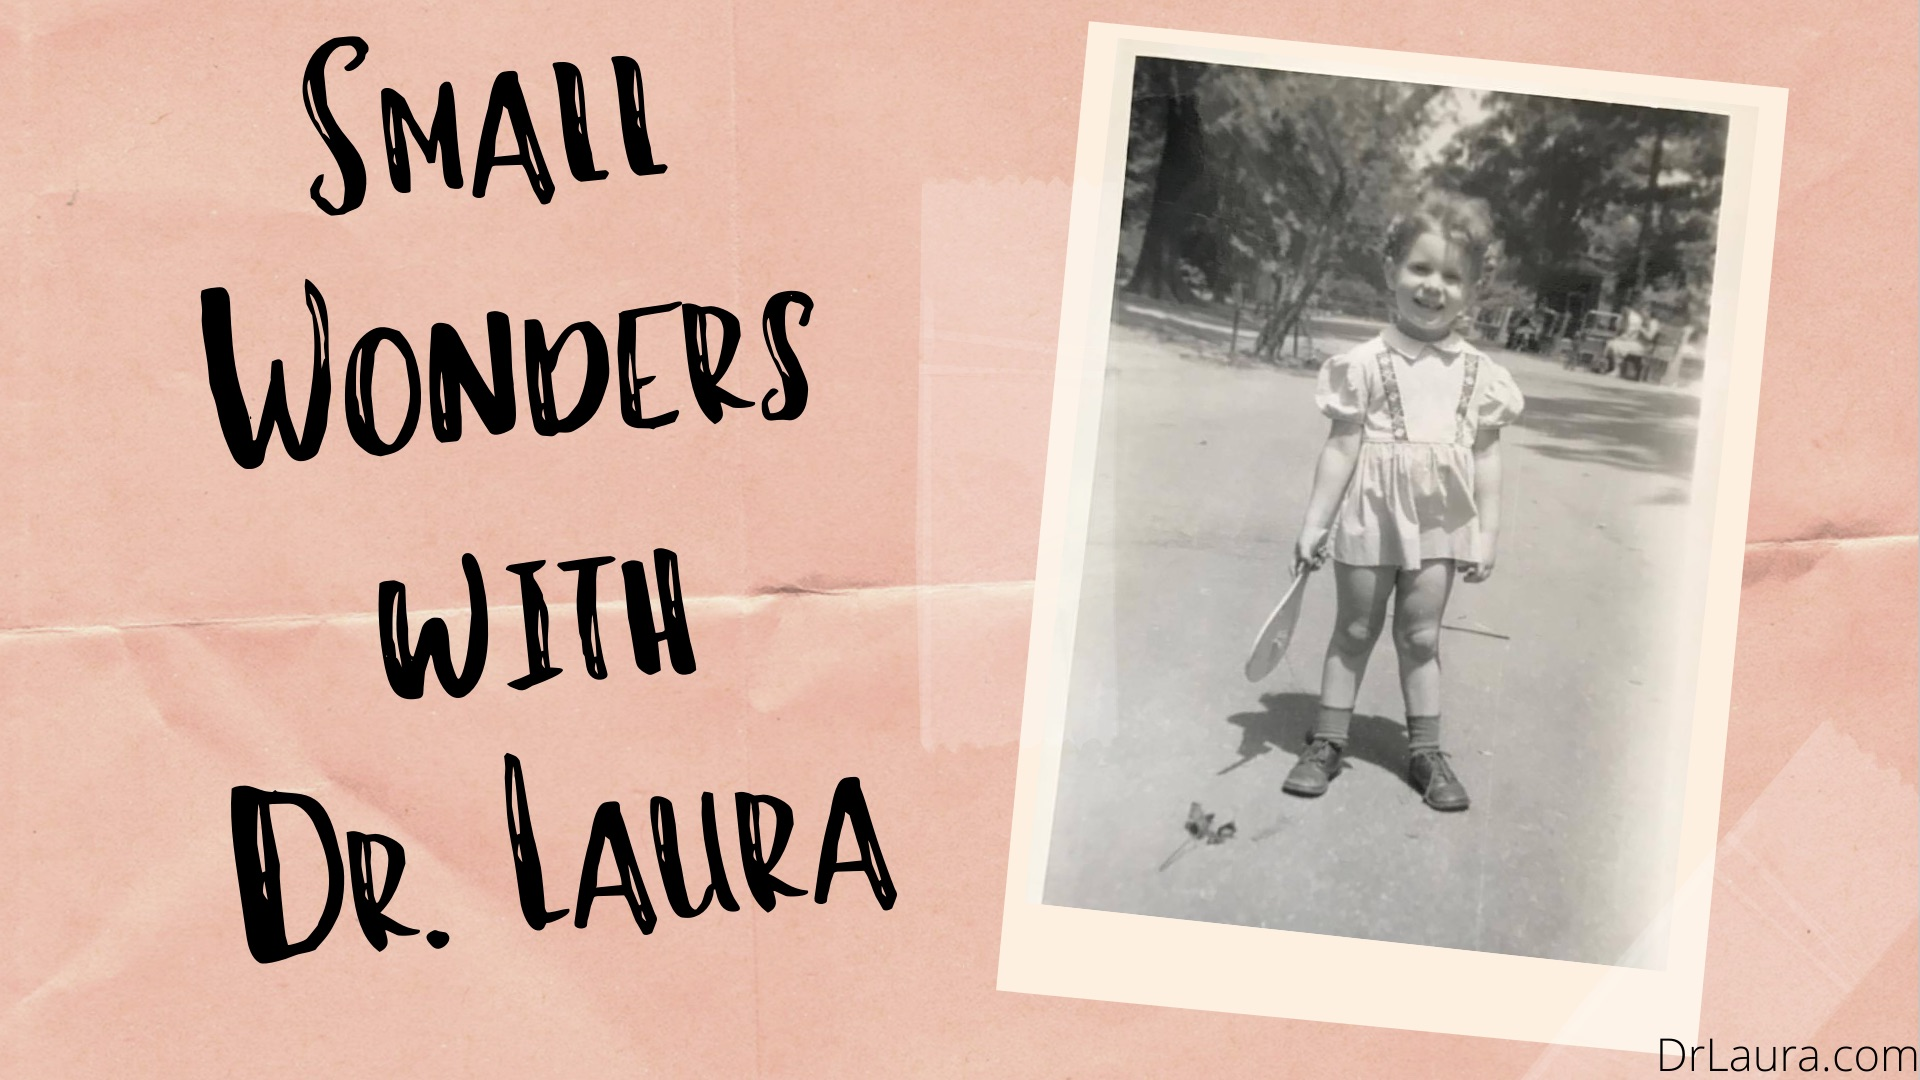 YouTube: Small Wonders With Dr. Laura